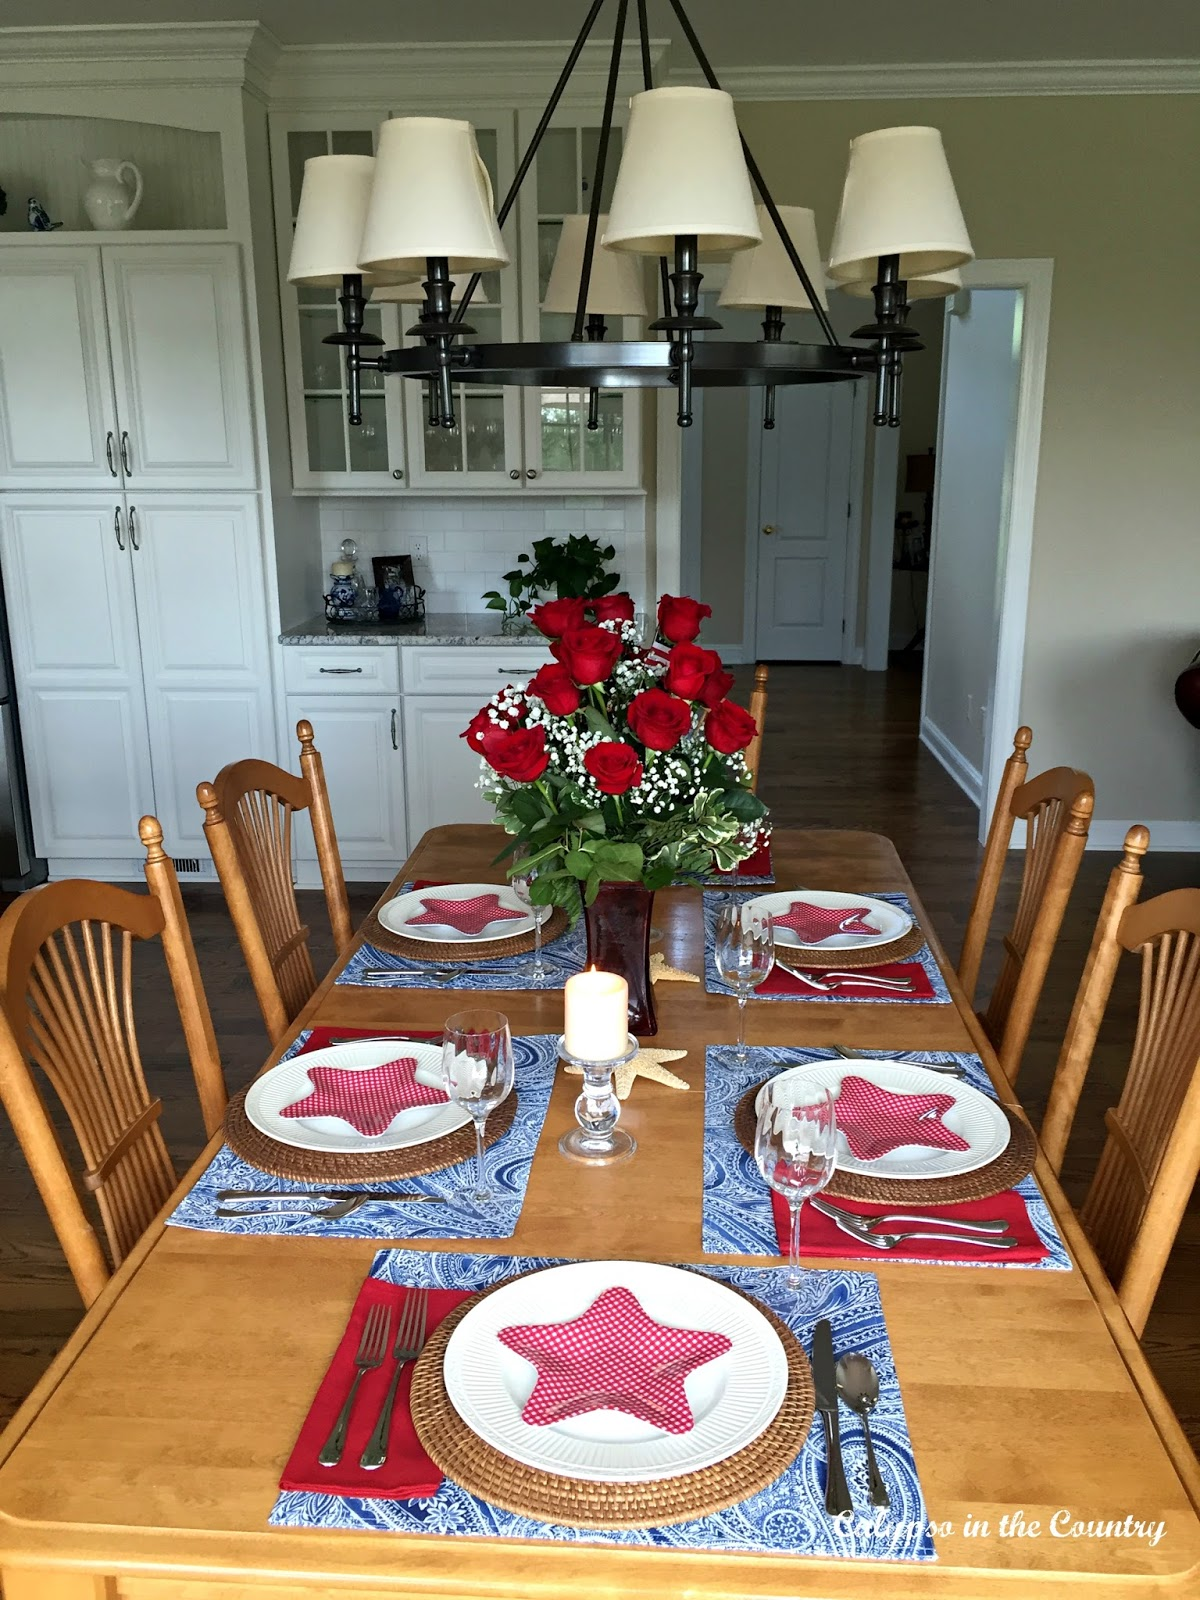 calypso in the country patriotic table setting in the kitchen